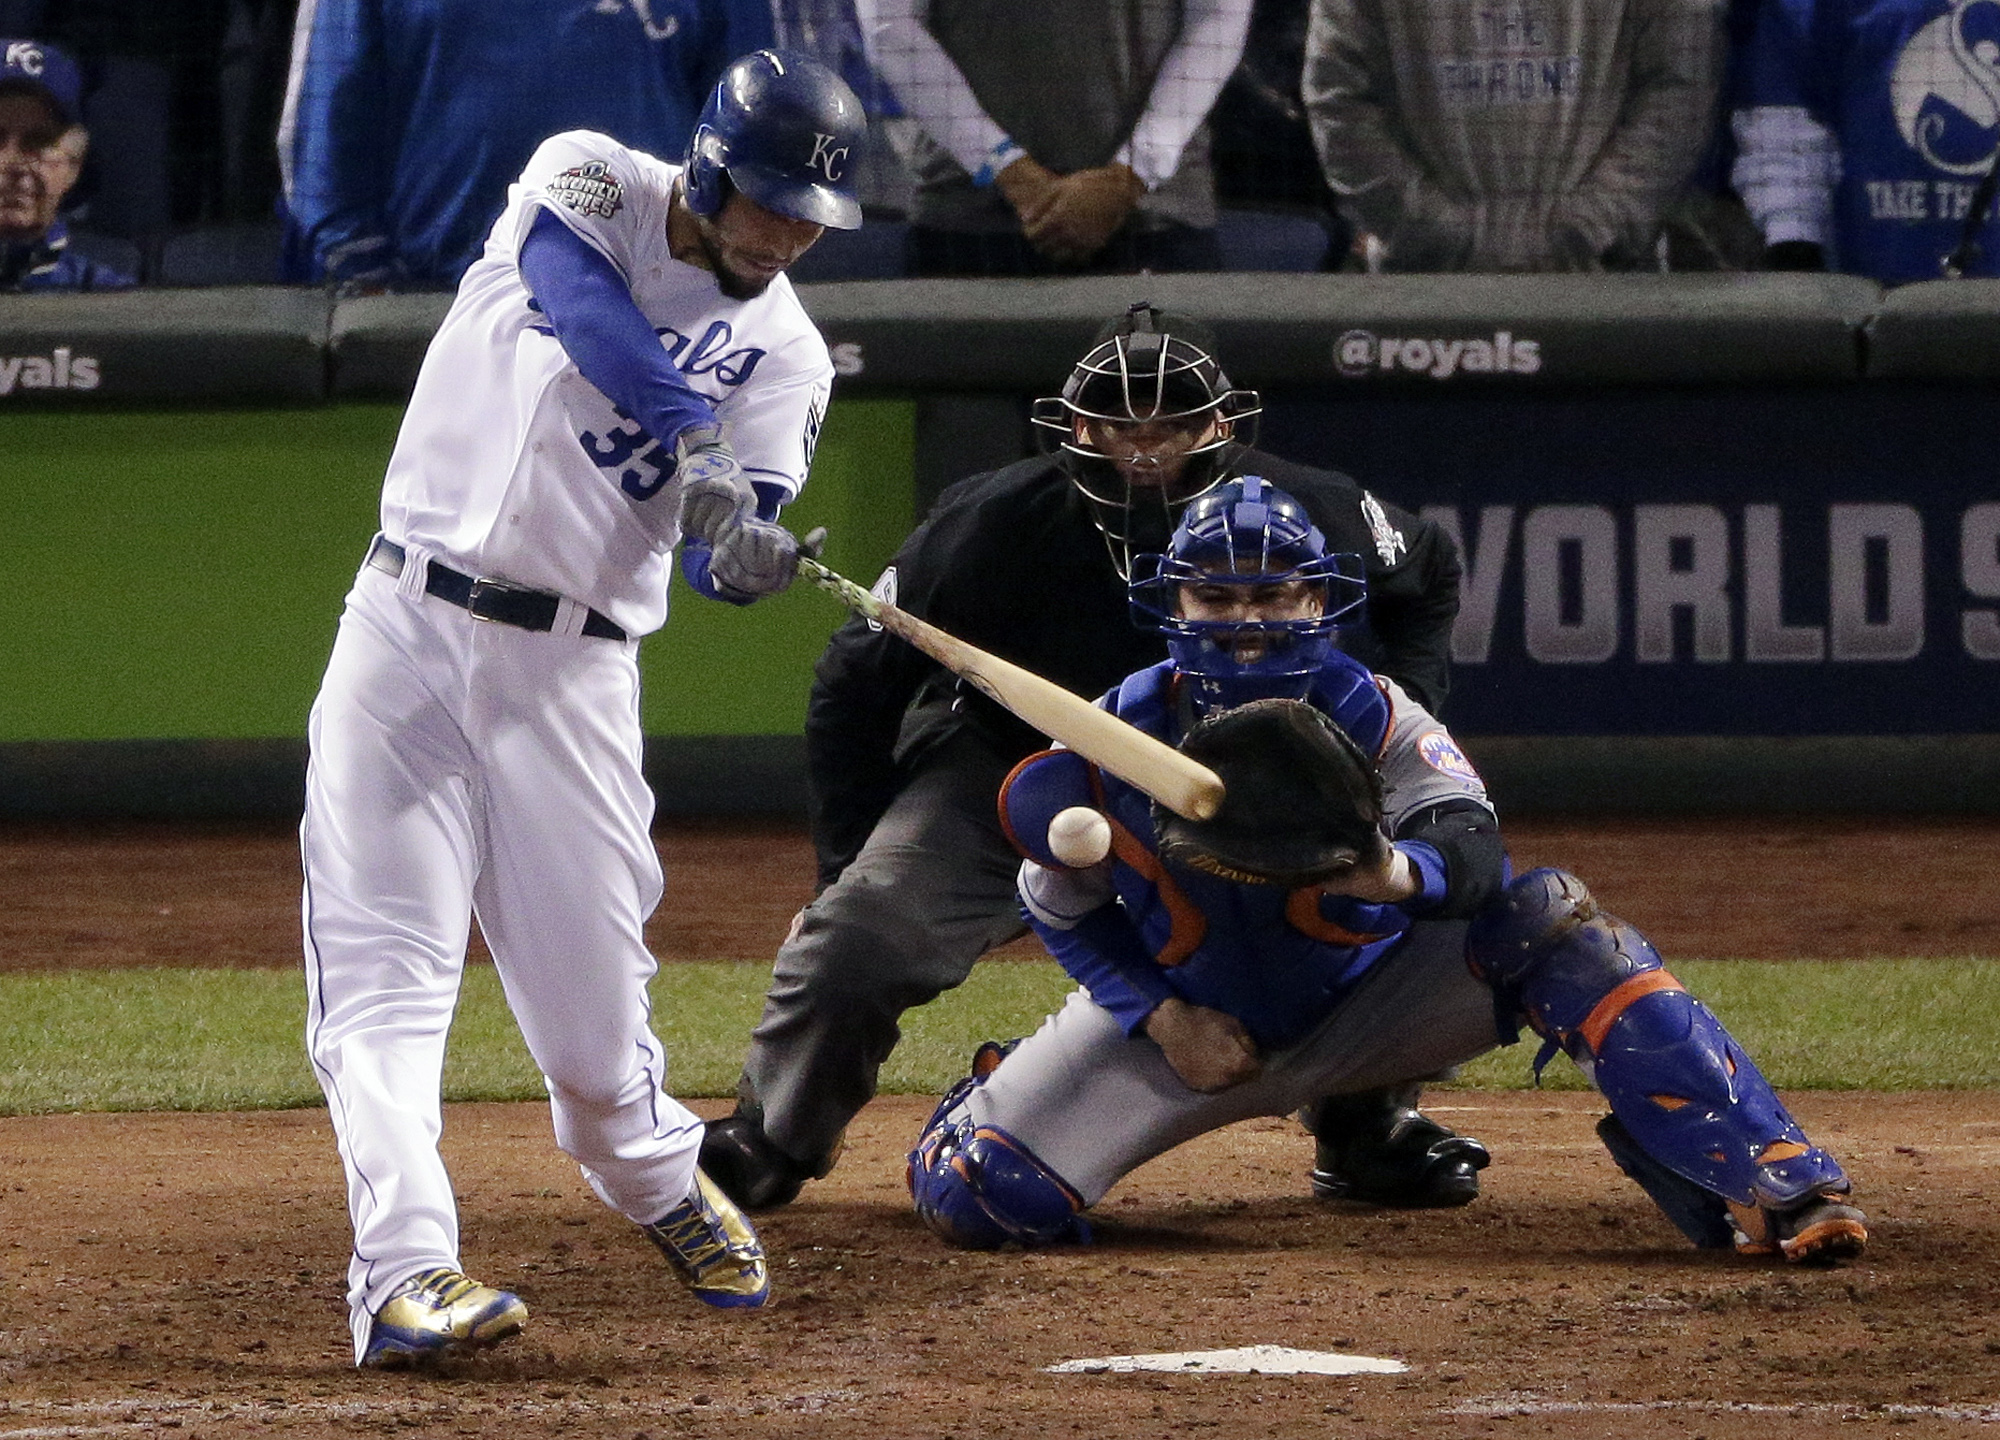 FILE - In this Oct. 28, 2015, file photo, Kansas City Royals' Eric Hosmer hits a two-run single against the New York Mets during the fifth inning of Game 2 of the baseball World Series in Kansas City, Mo. The Royals host the Mets on opening day of the 201